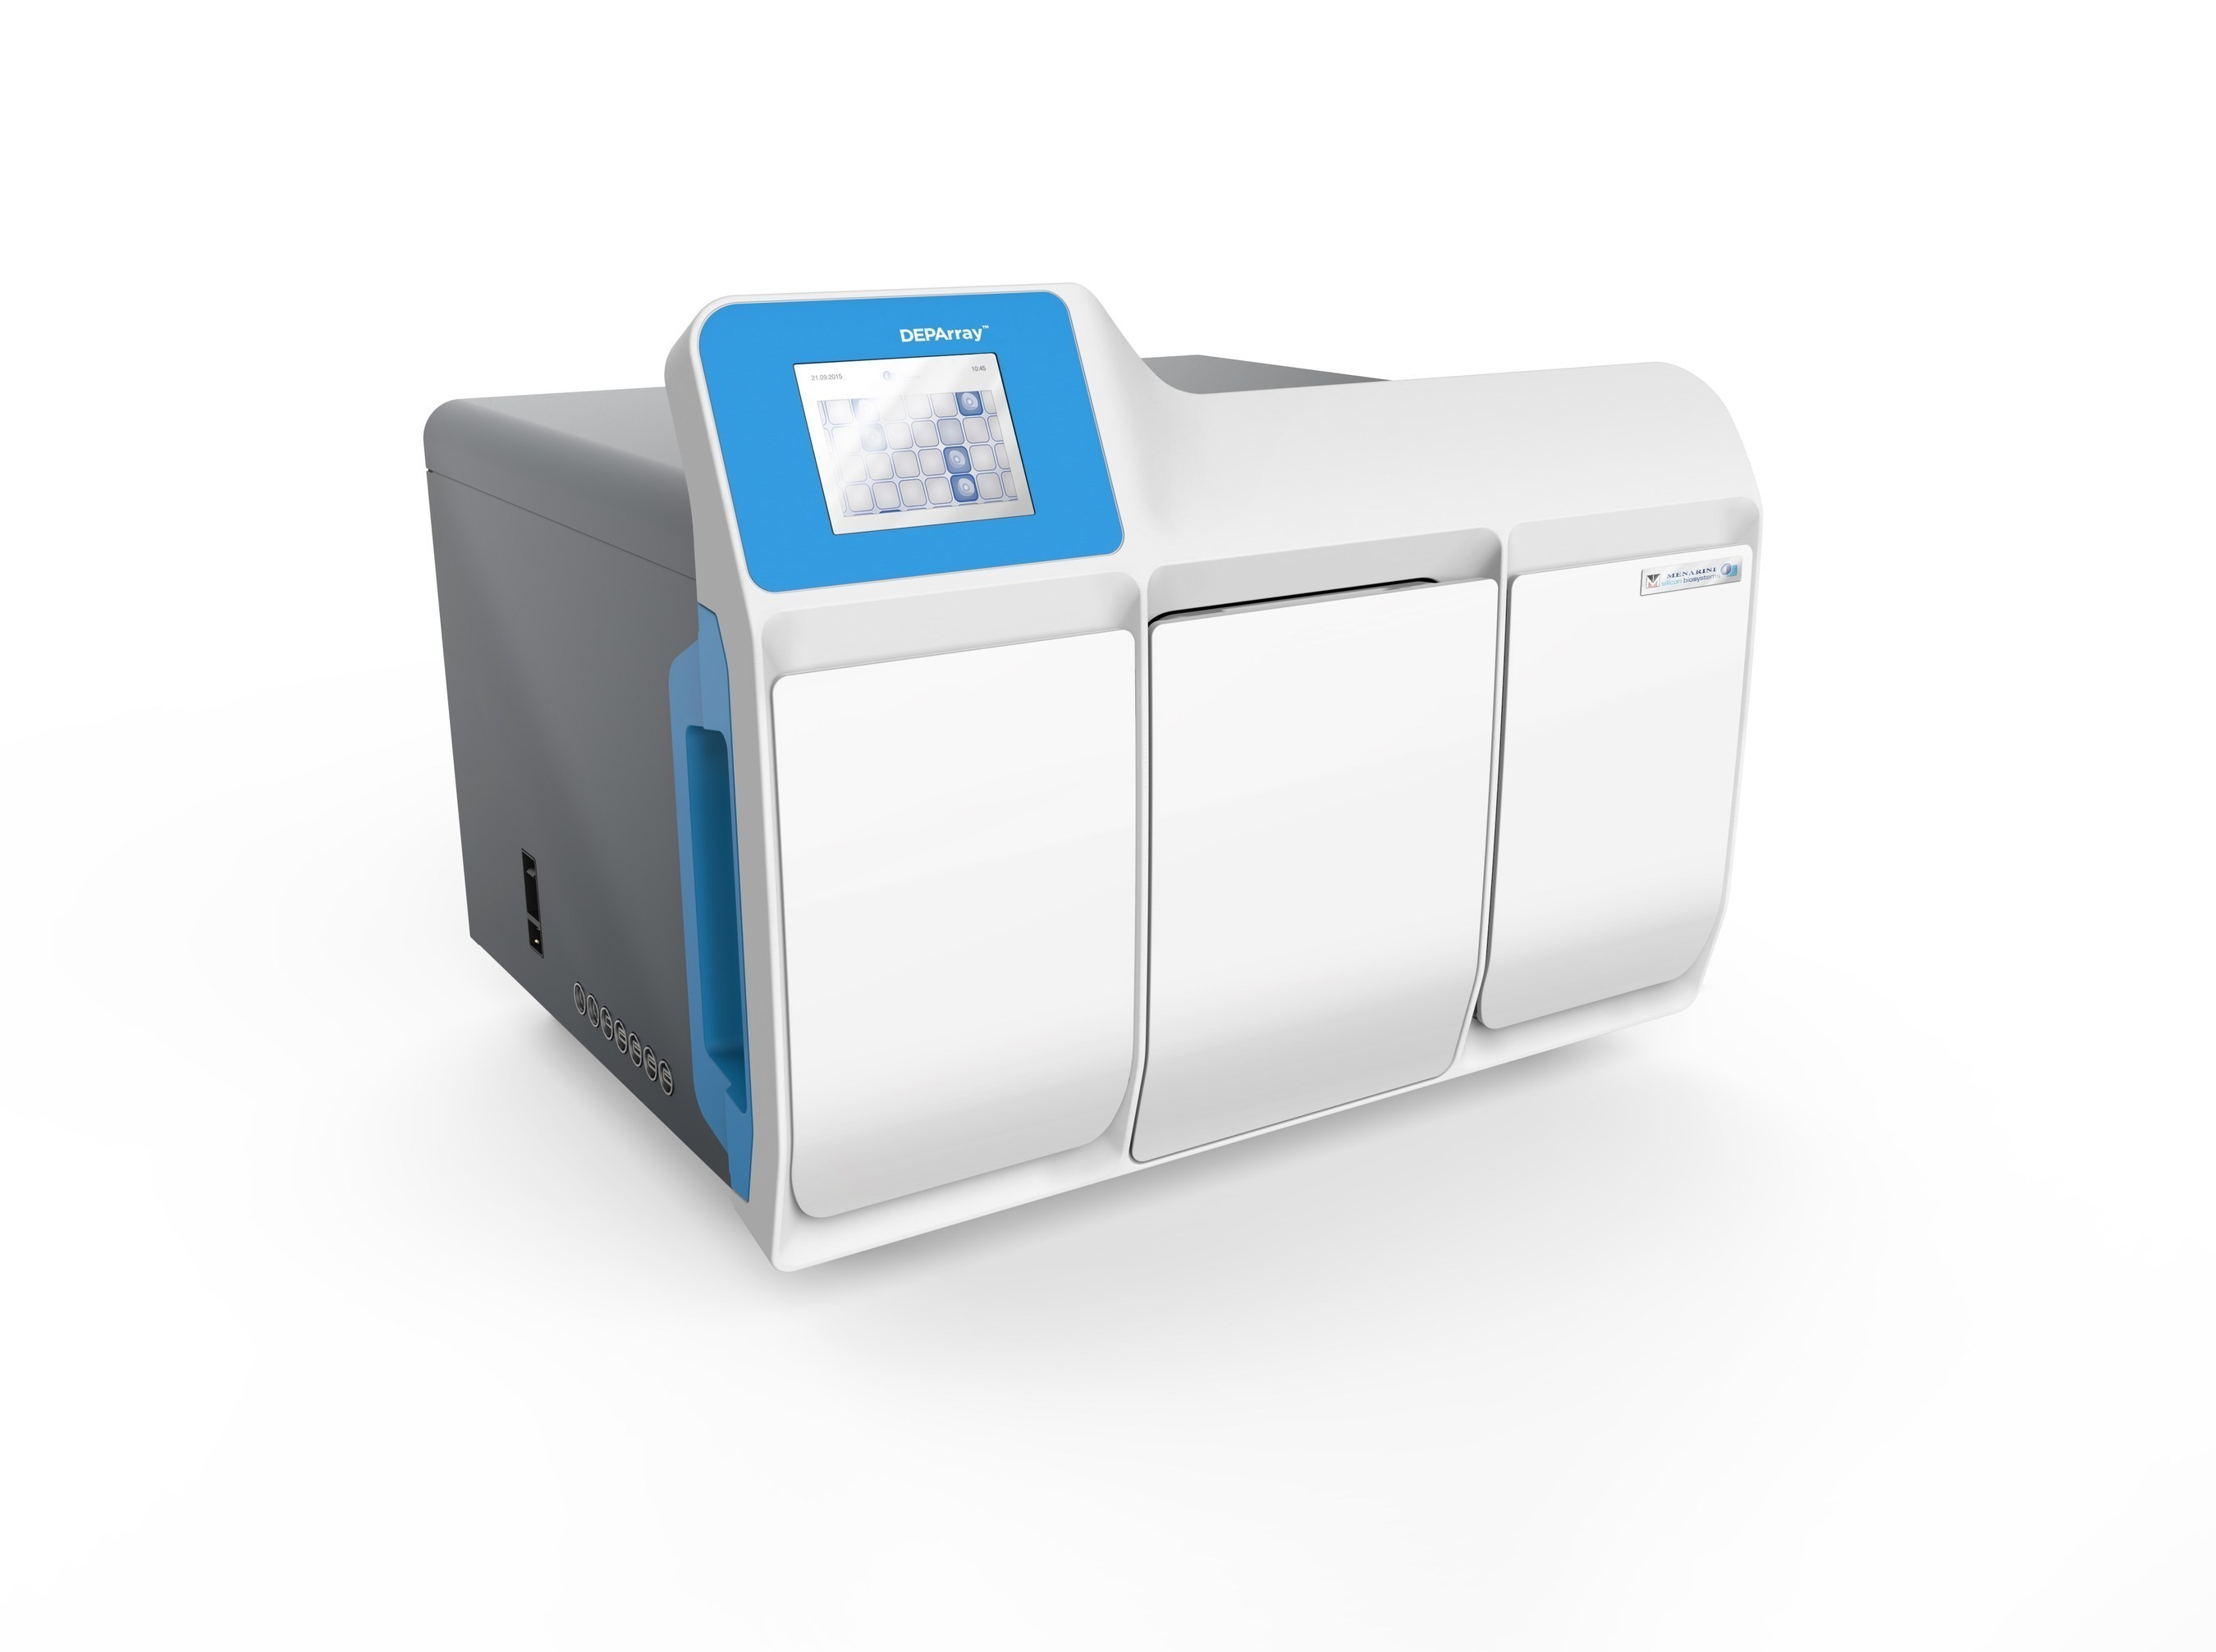 Presenting DEPArray NxT -- The new compact and more powerful benchtop instrument for faster, automated recovery of pure single cells or groups of cells. Isolate pure tumor and stromal cell populations from any FFPE sample. Recover single circulating tumor cells (CTCs) from blood samples for complete and accurate analysis of cancer genome aberrations. Manufactured by Menarini-Silicon Biosystems.